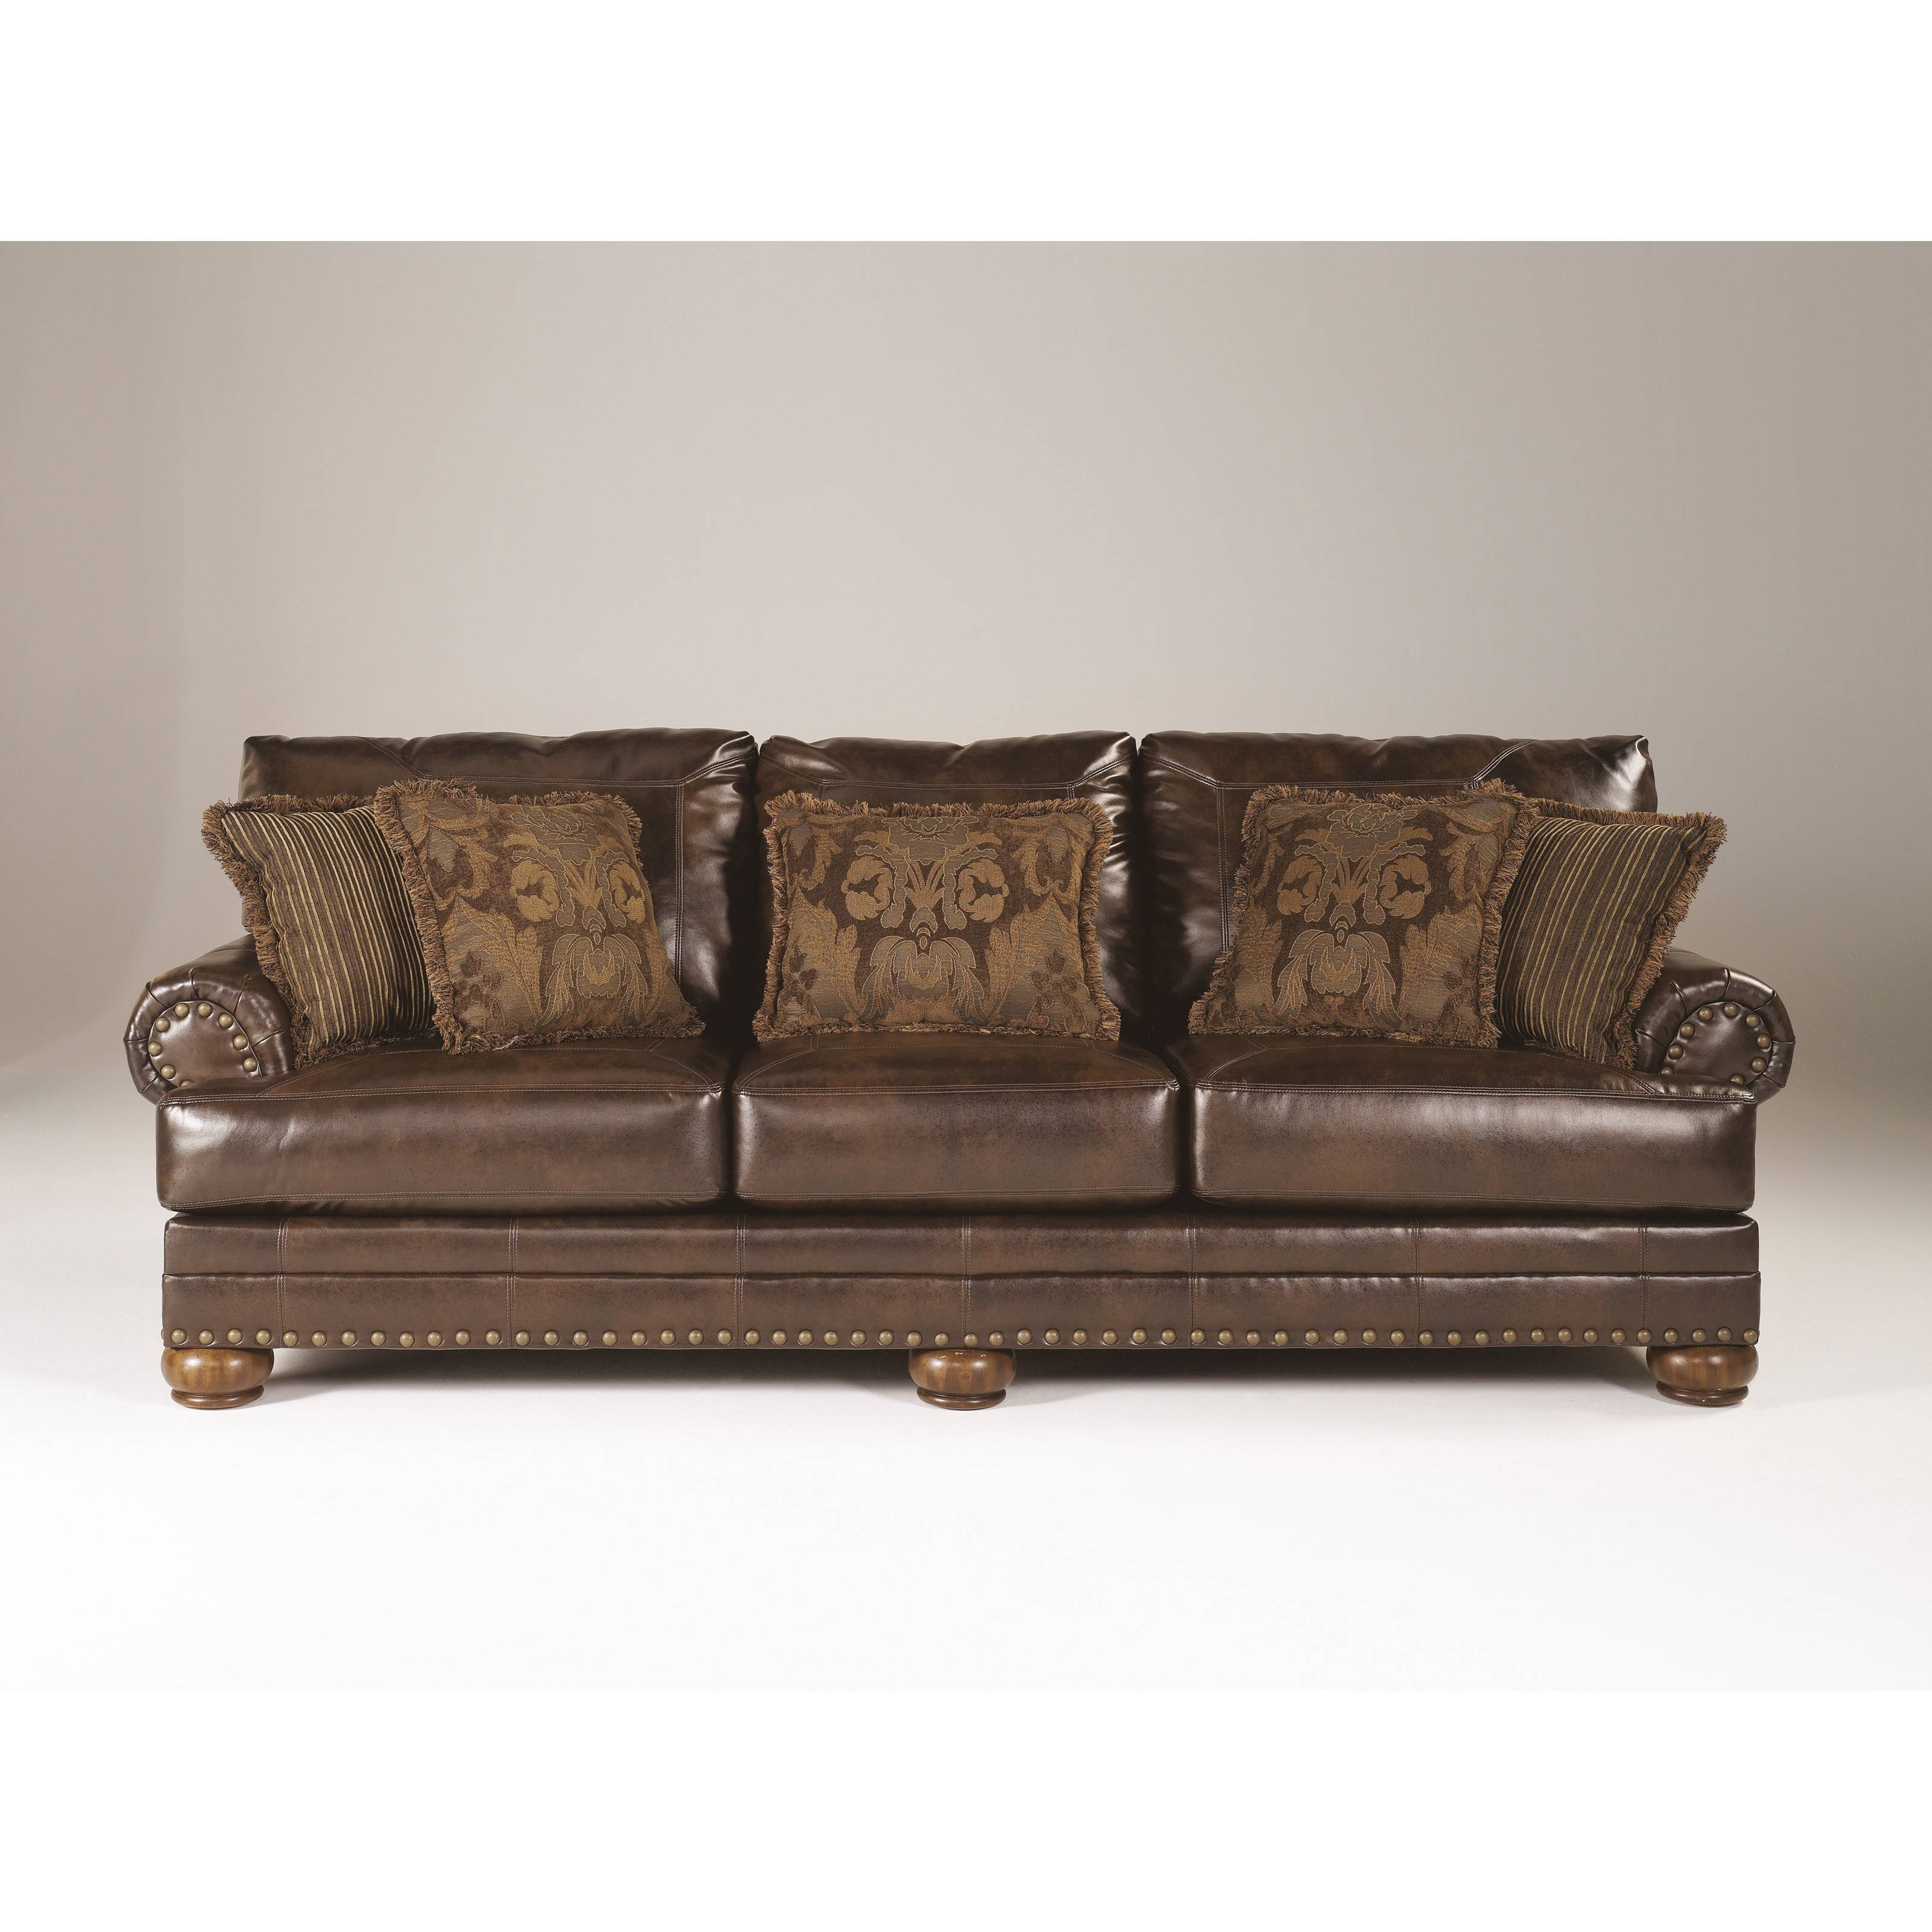 15 s Brown Leather Sofas With Nailhead Trim